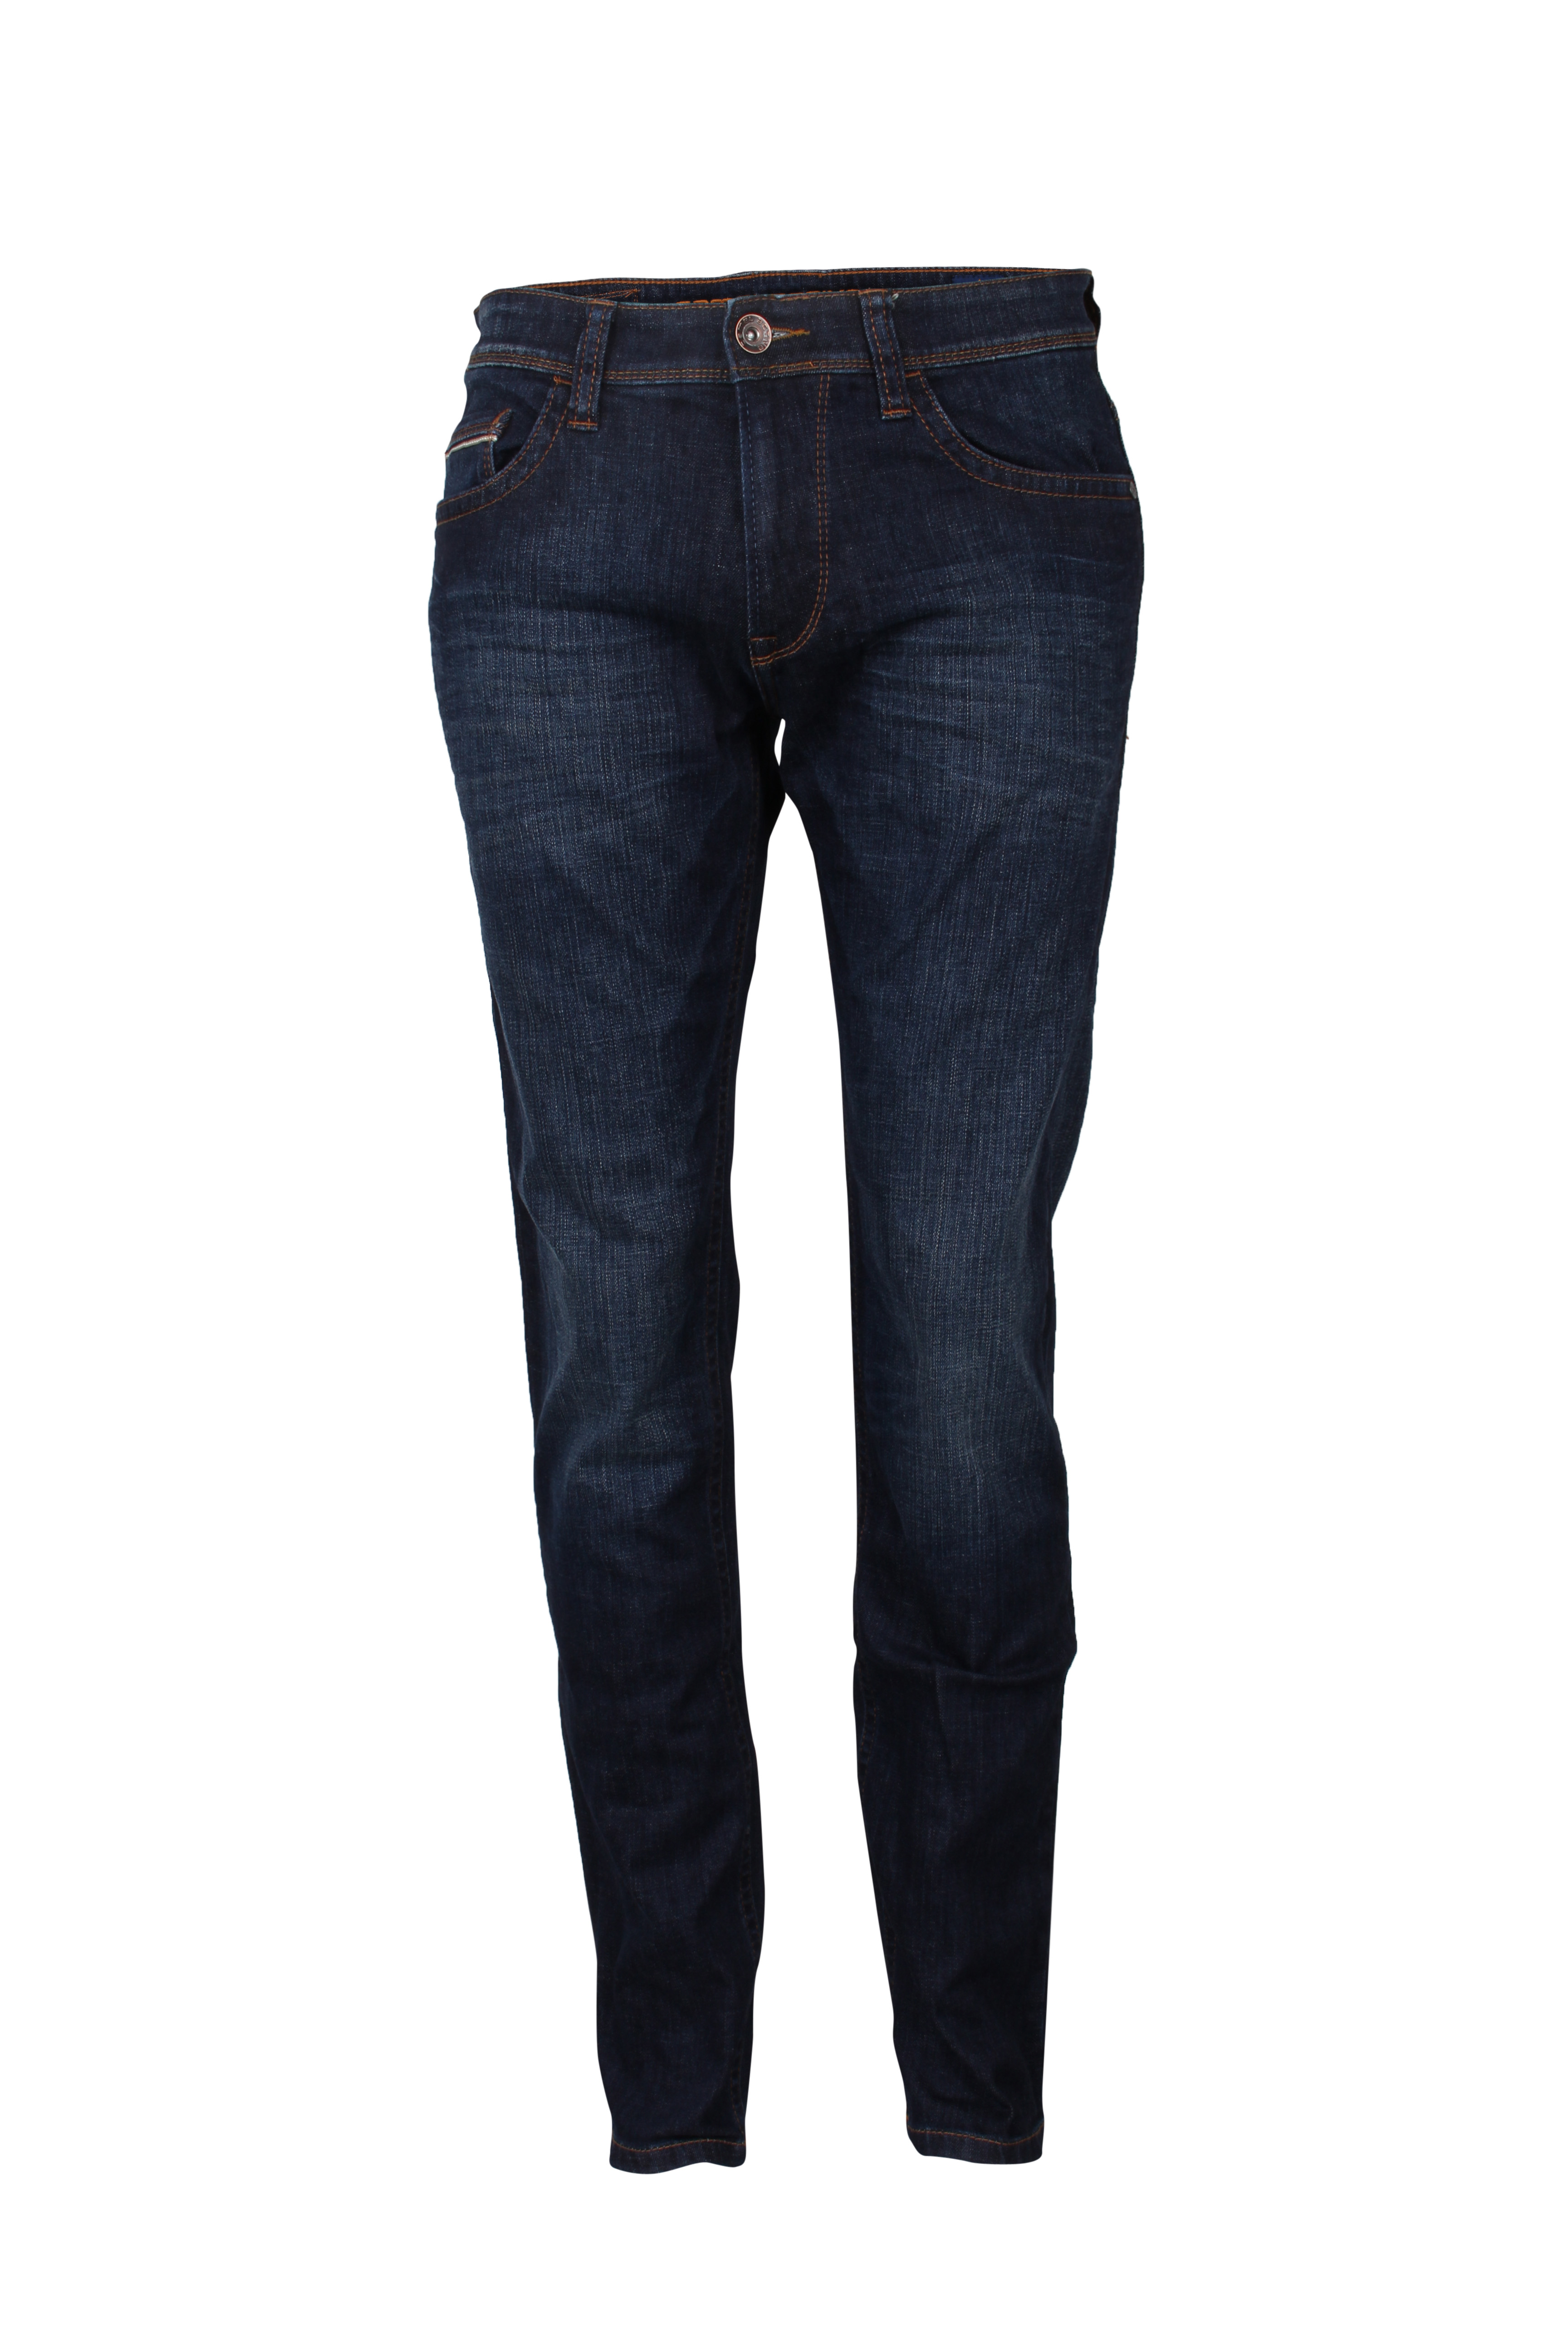 ActiveShoeWorld.de  camel active Jeans Madison dirty blue used